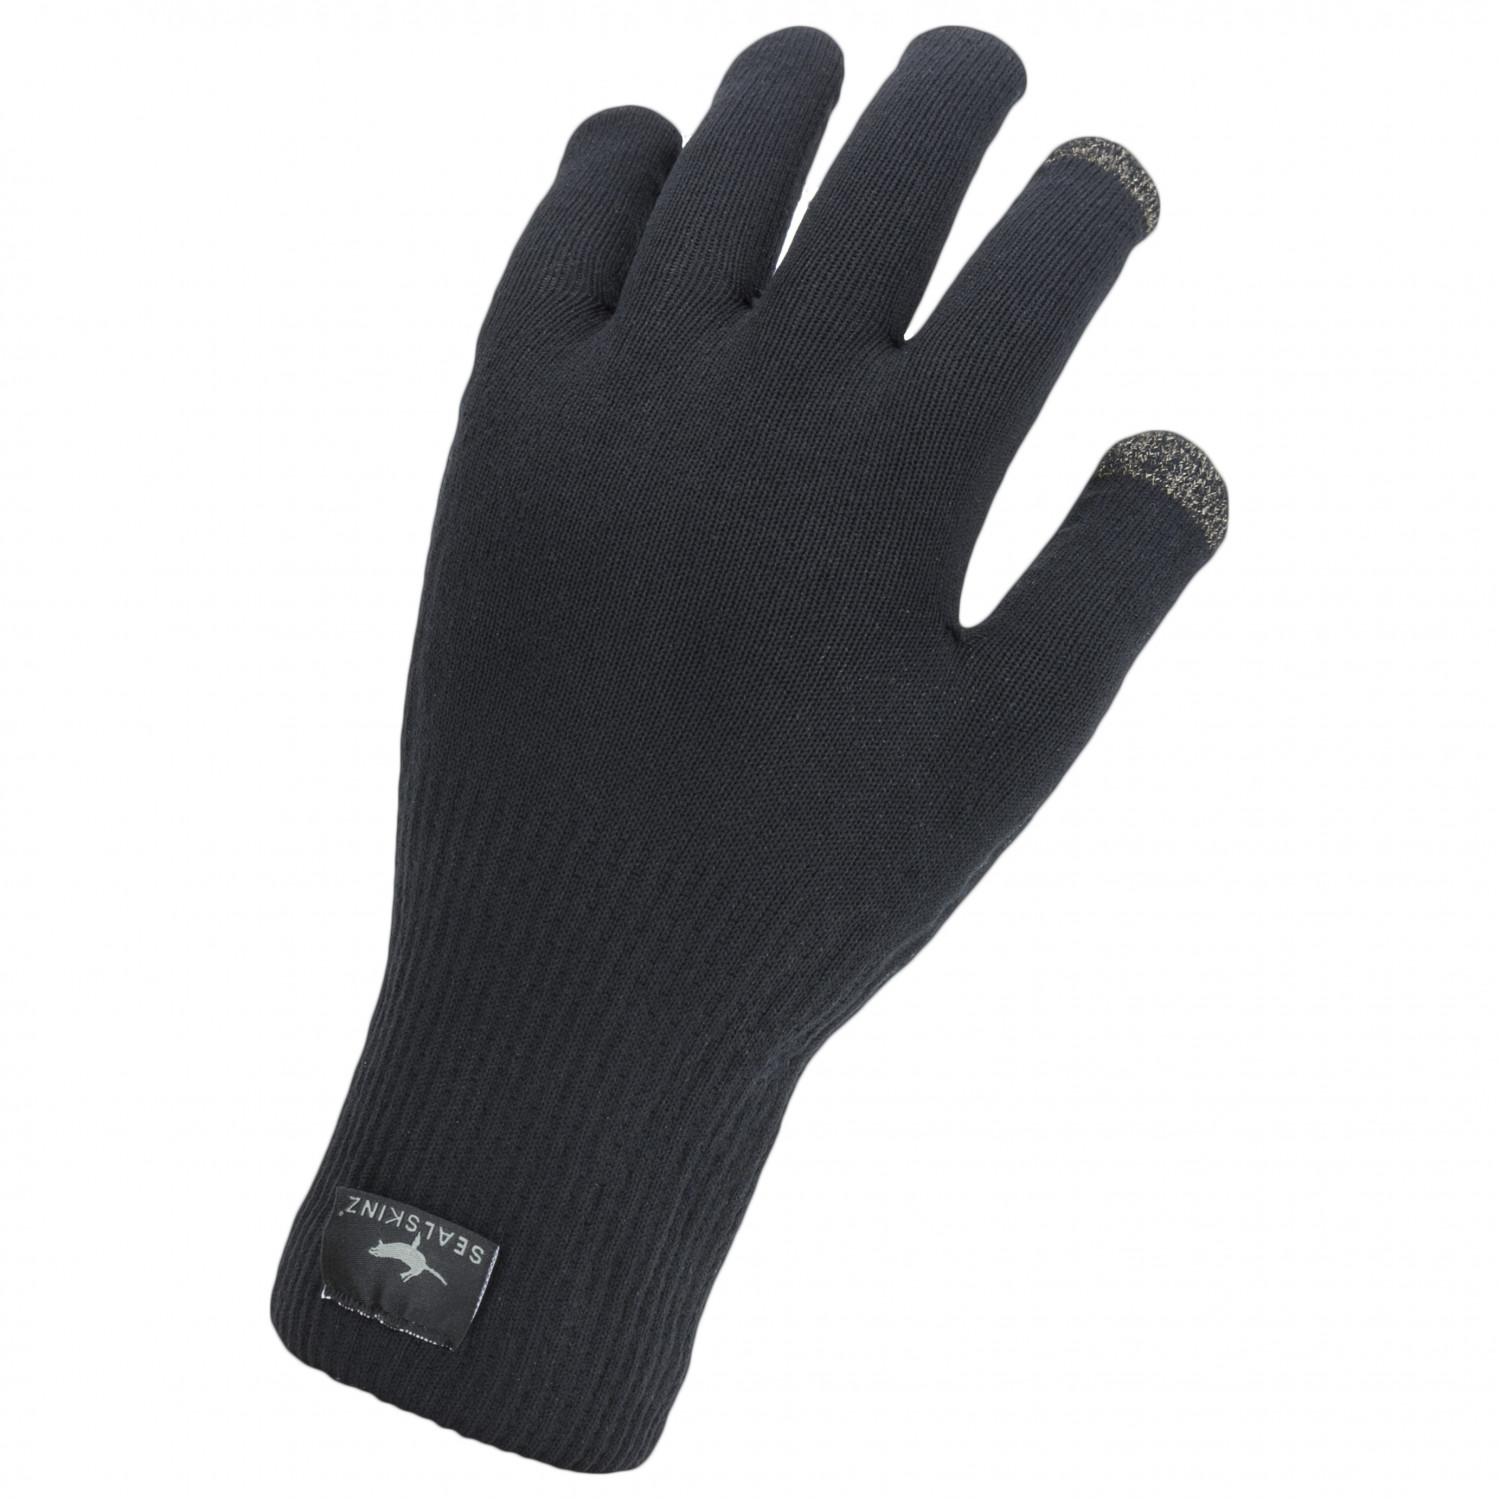 Sealskinz Ultra Grip Unisex Gauntlet Waterproof Outdoor Gloves Black